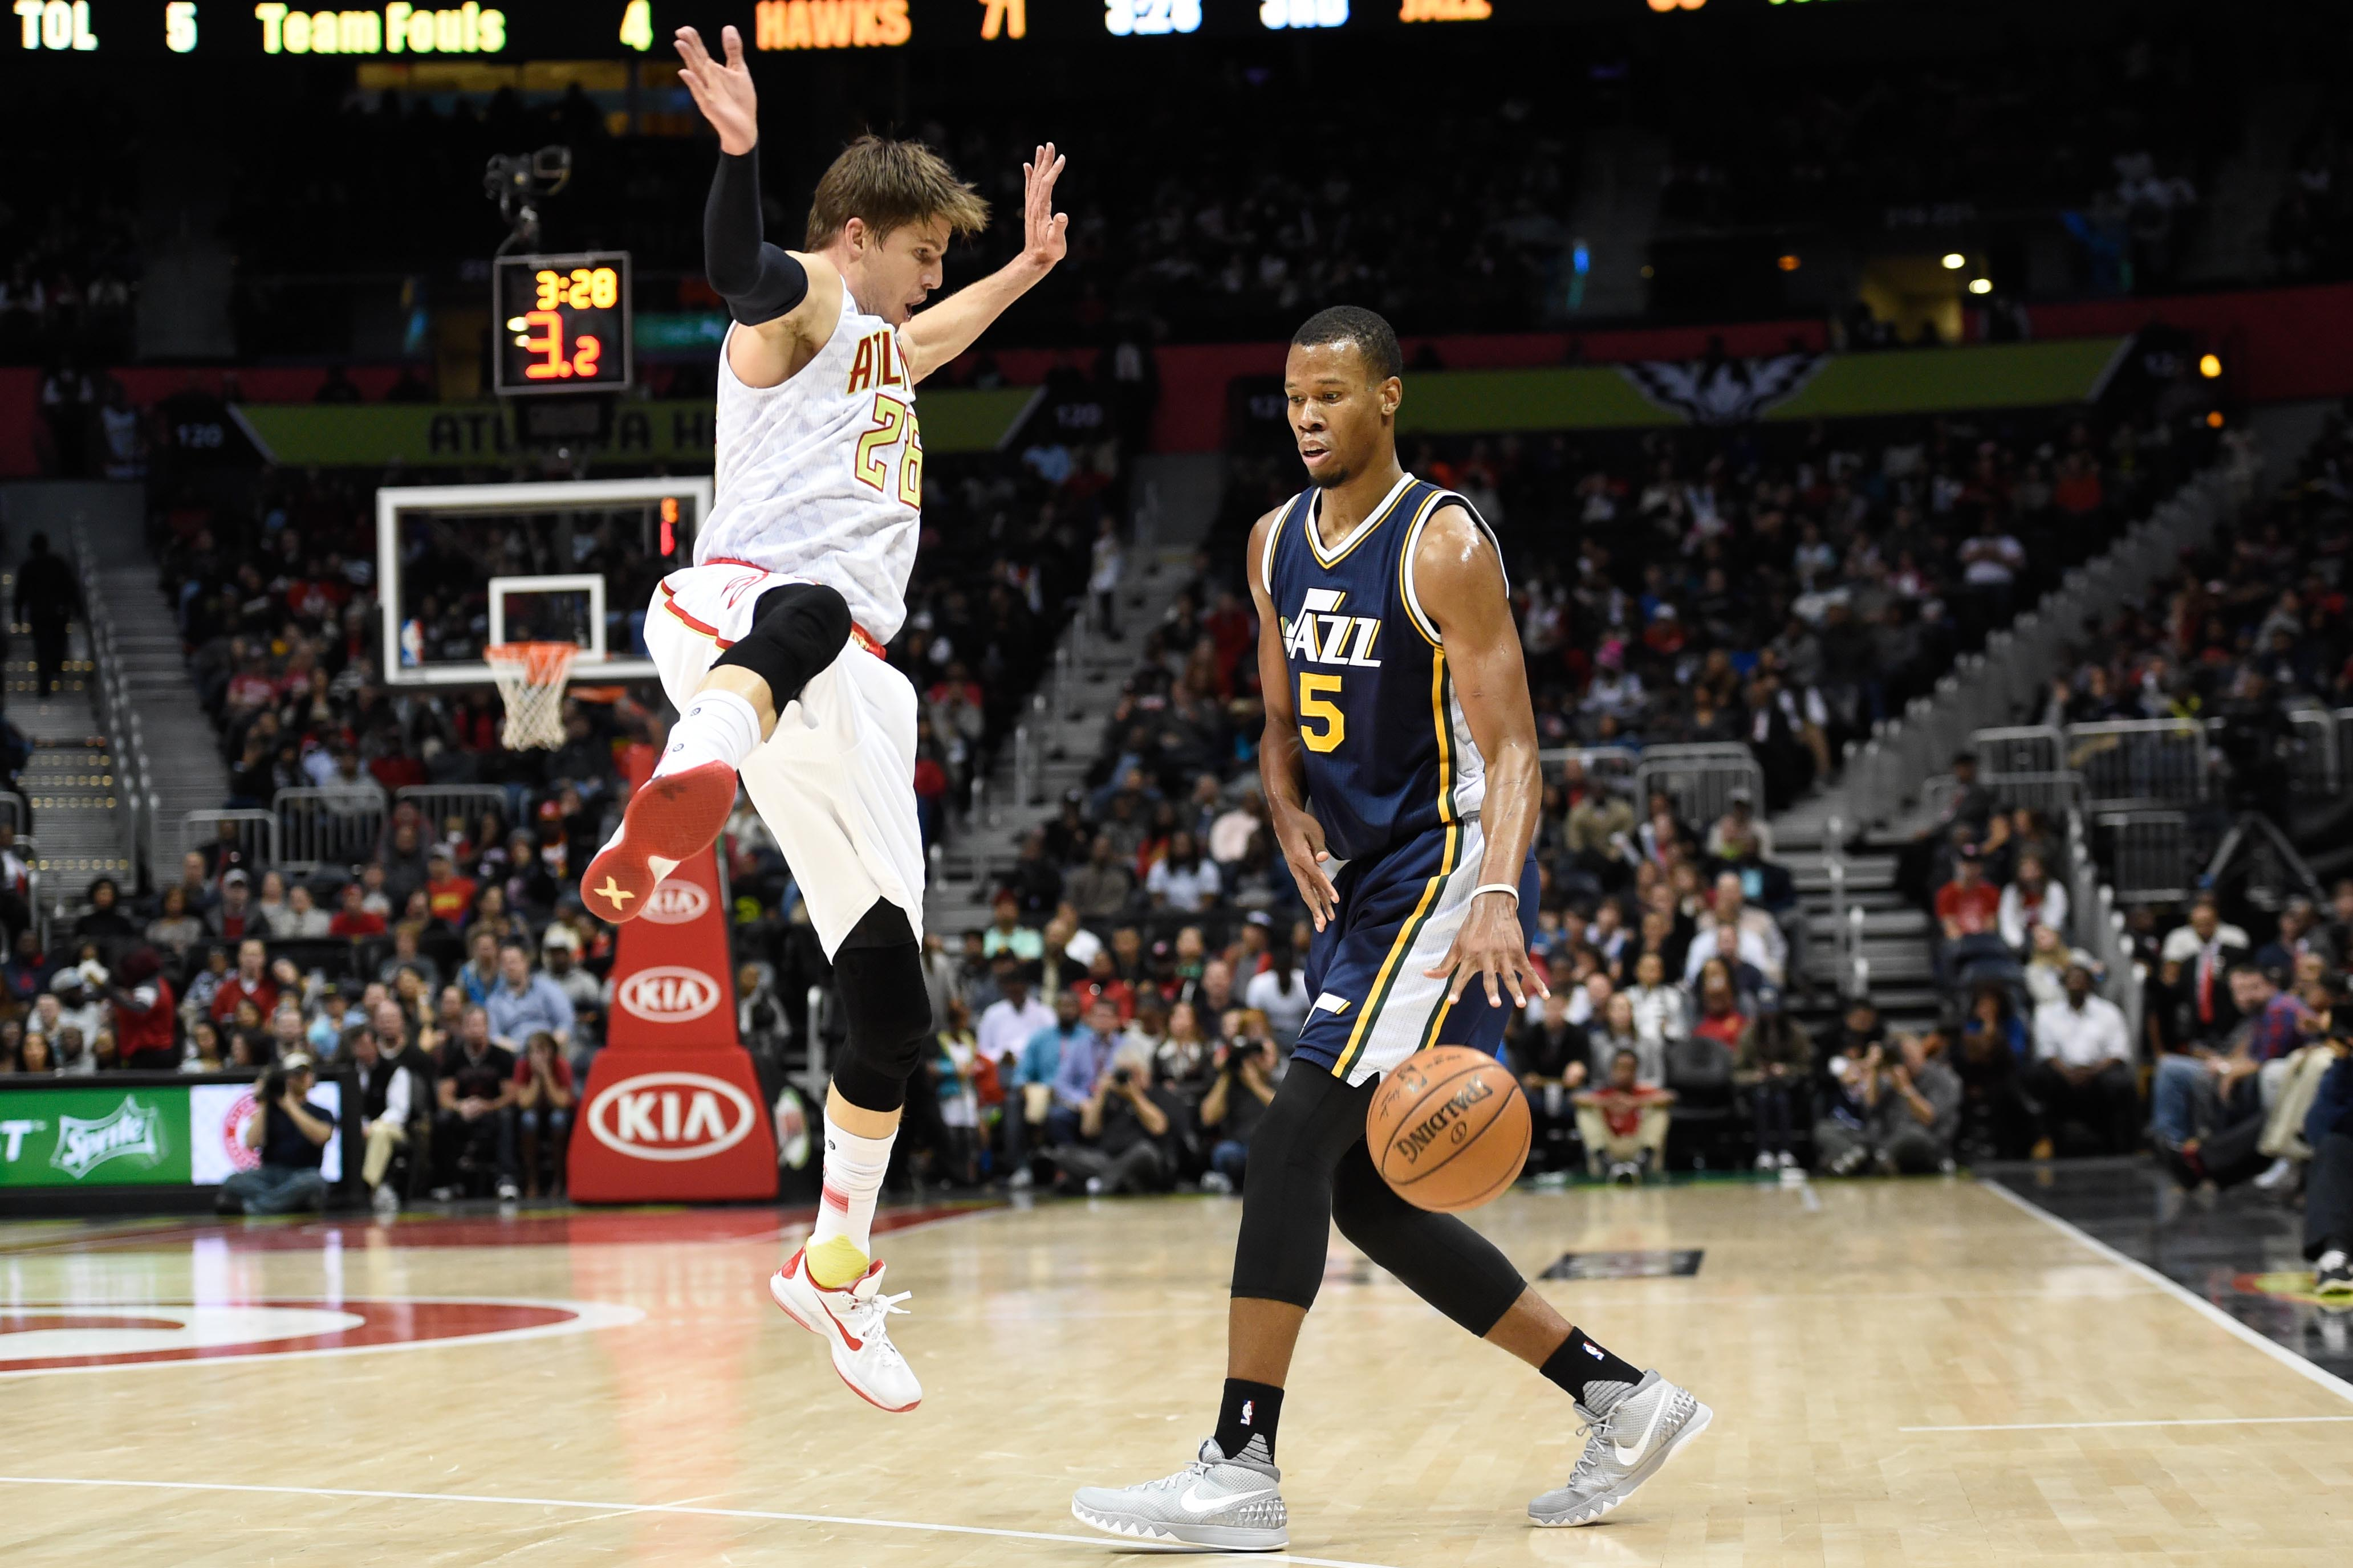 8929488-nba-utah-jazz-at-atlanta-hawks